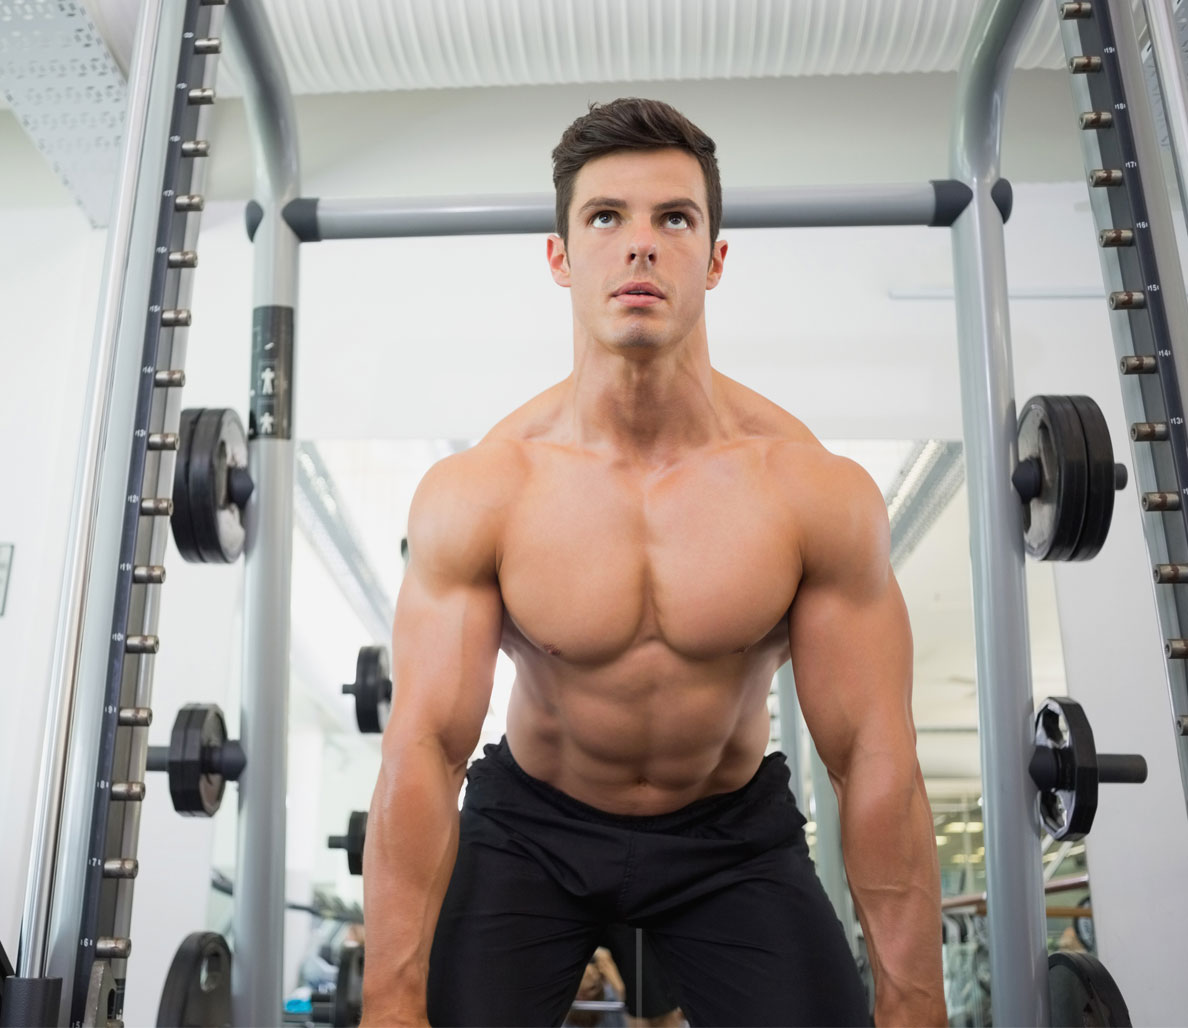 The Science of Getting Swole